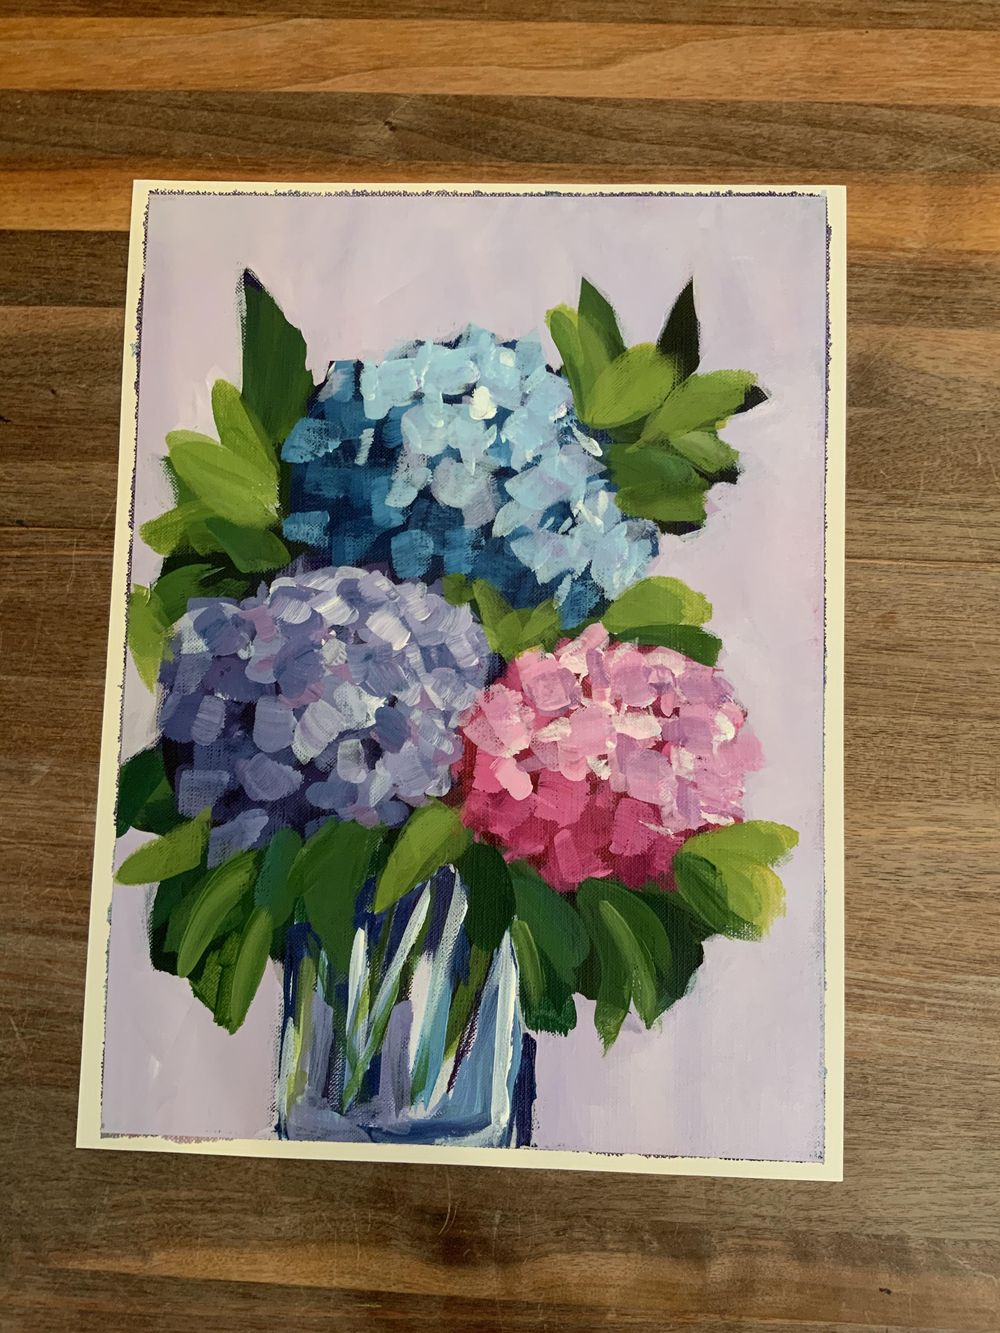 Abstract Hydrangeas - image 1 - student project